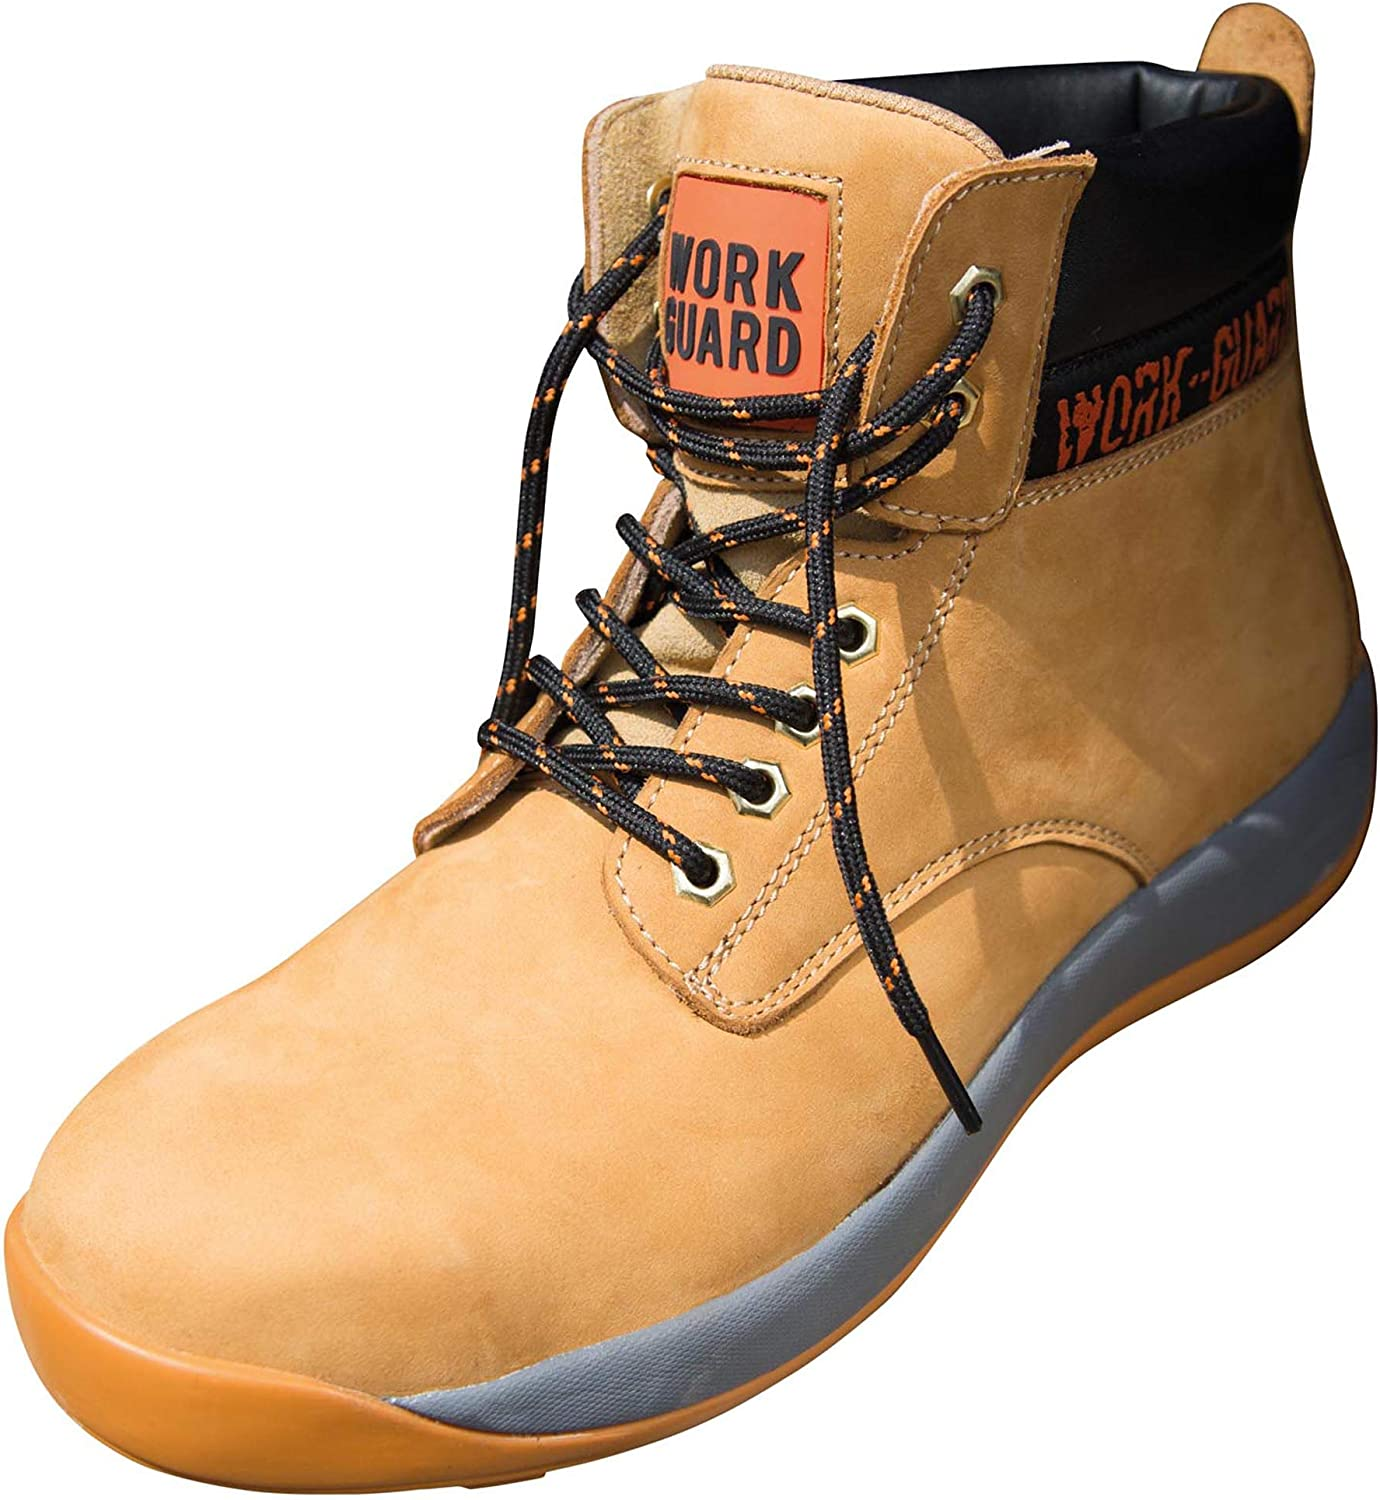 Result Work-Guard R3-44X Strider Safety Boot